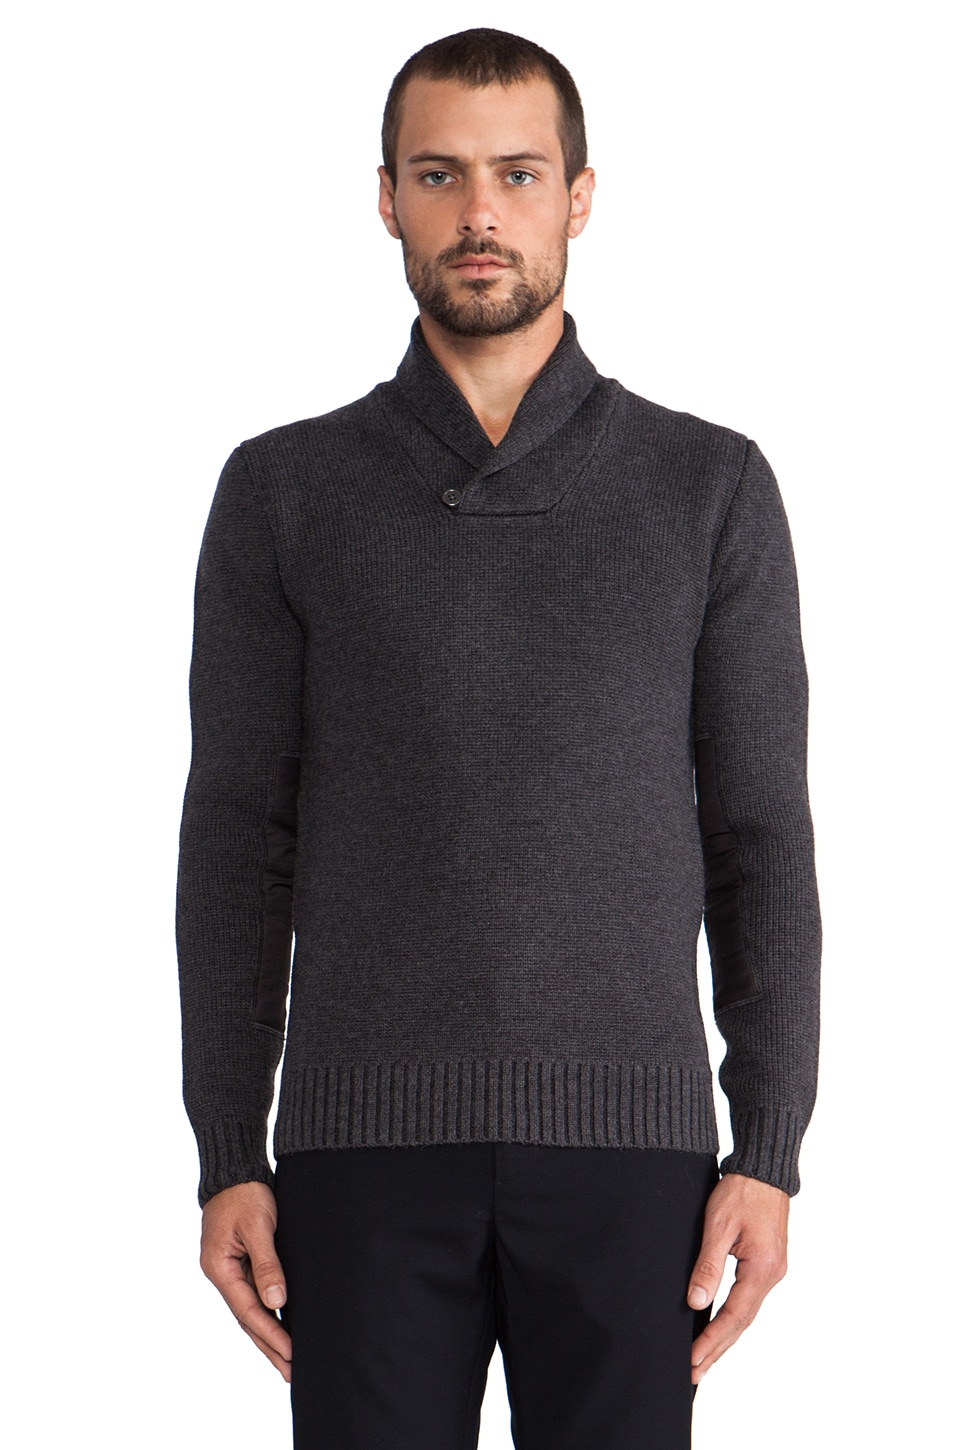 WRK Dorset Sweater in Charcoal